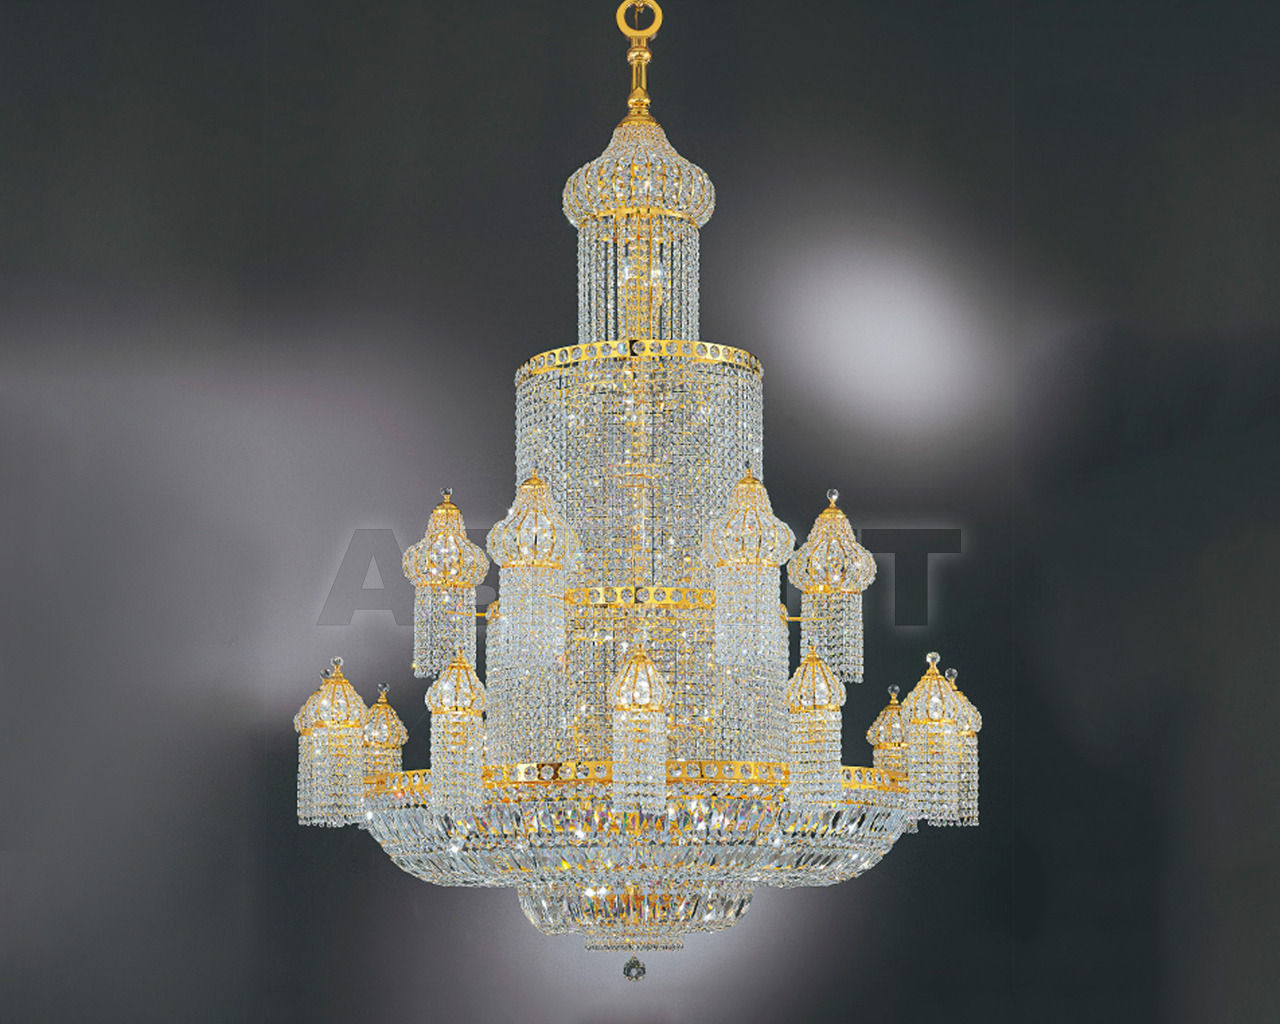 Купить Люстра Asfour Crystal Crystal 2013 CH 18+1Arabic style. Drop*Square stons.Gold